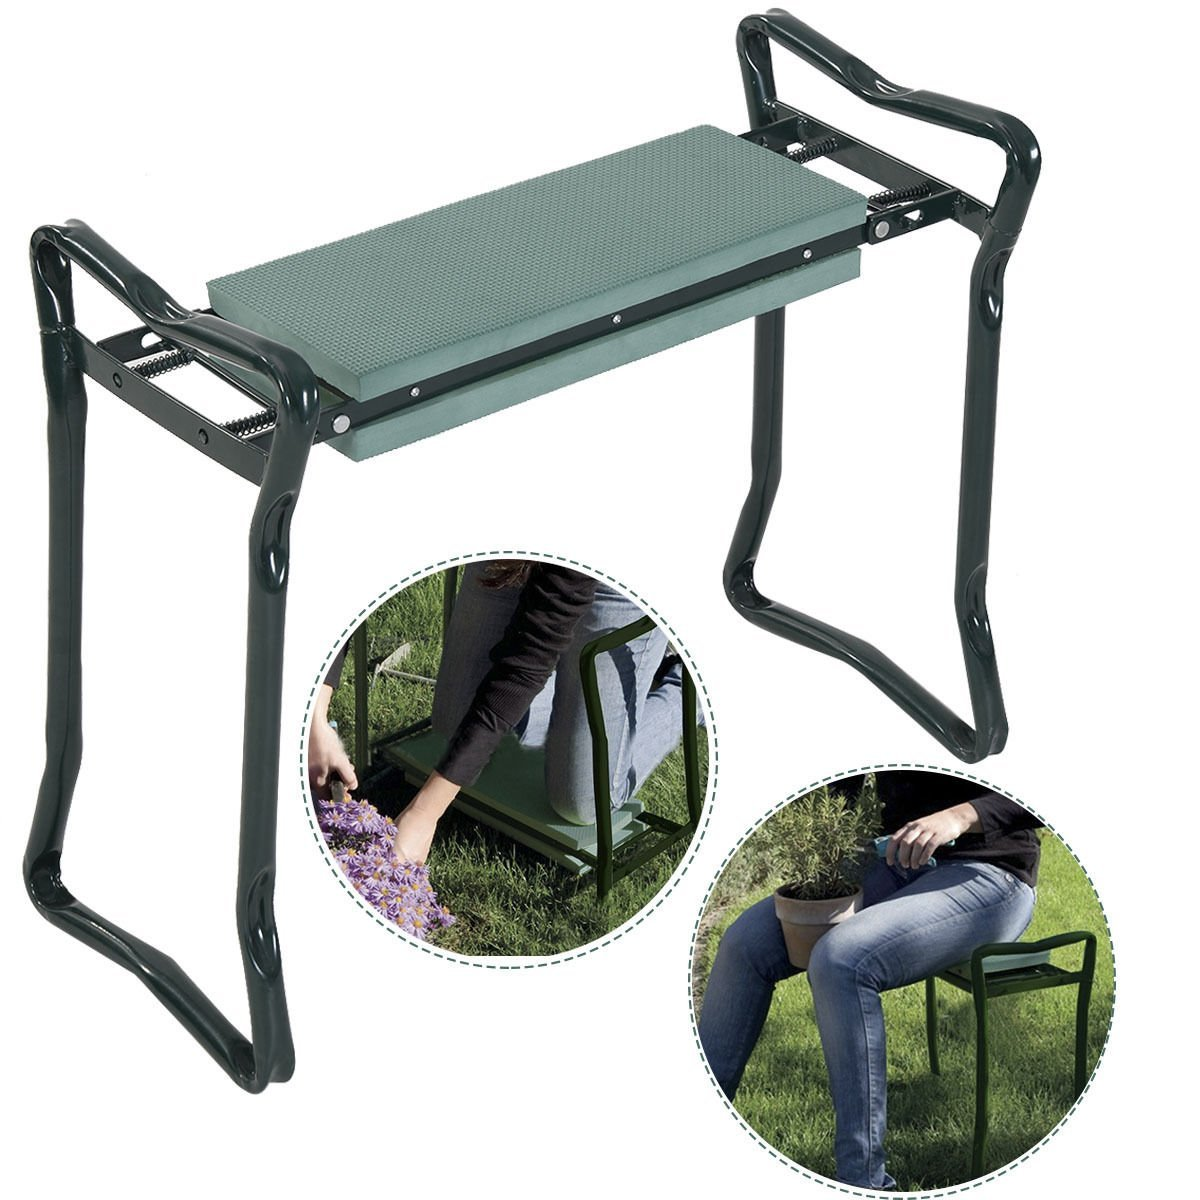 Top 8 Best Folding Garden Kneeler Seats Reviews